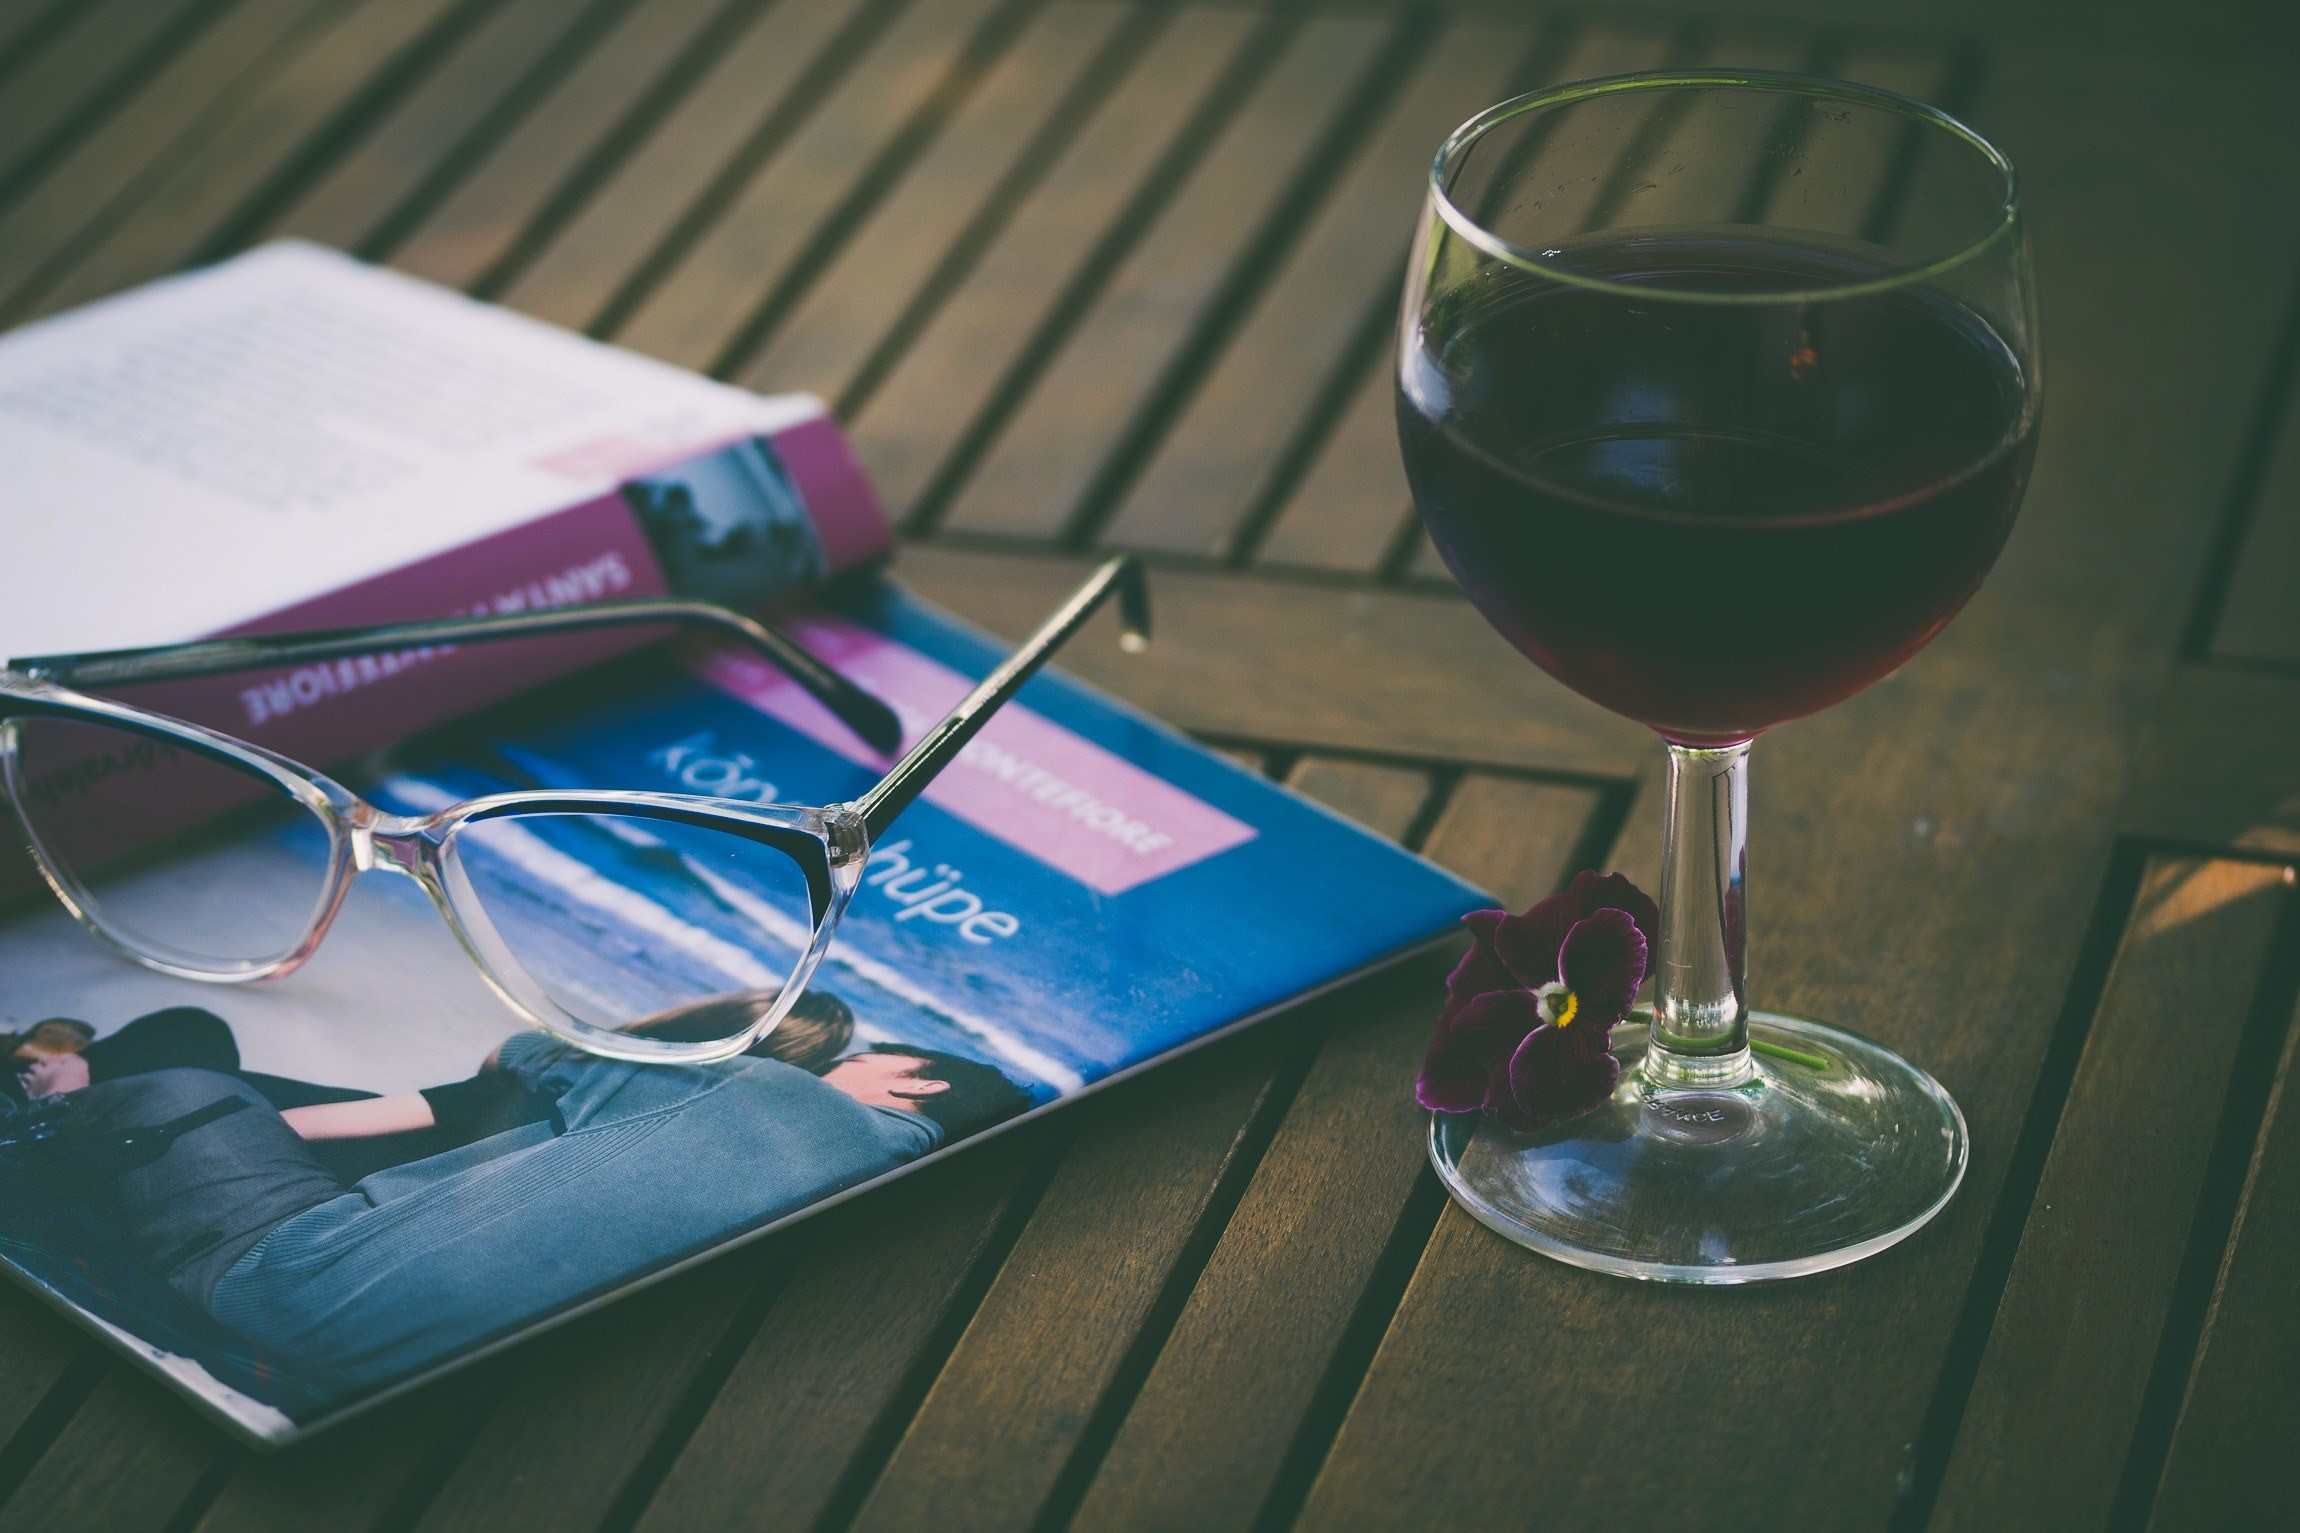 Res: 2300x1533, # a glass of red wine on the table along with a pair of eyeglasses  and a book enjoying a book with a glass of wine wallpaper and background  #10660